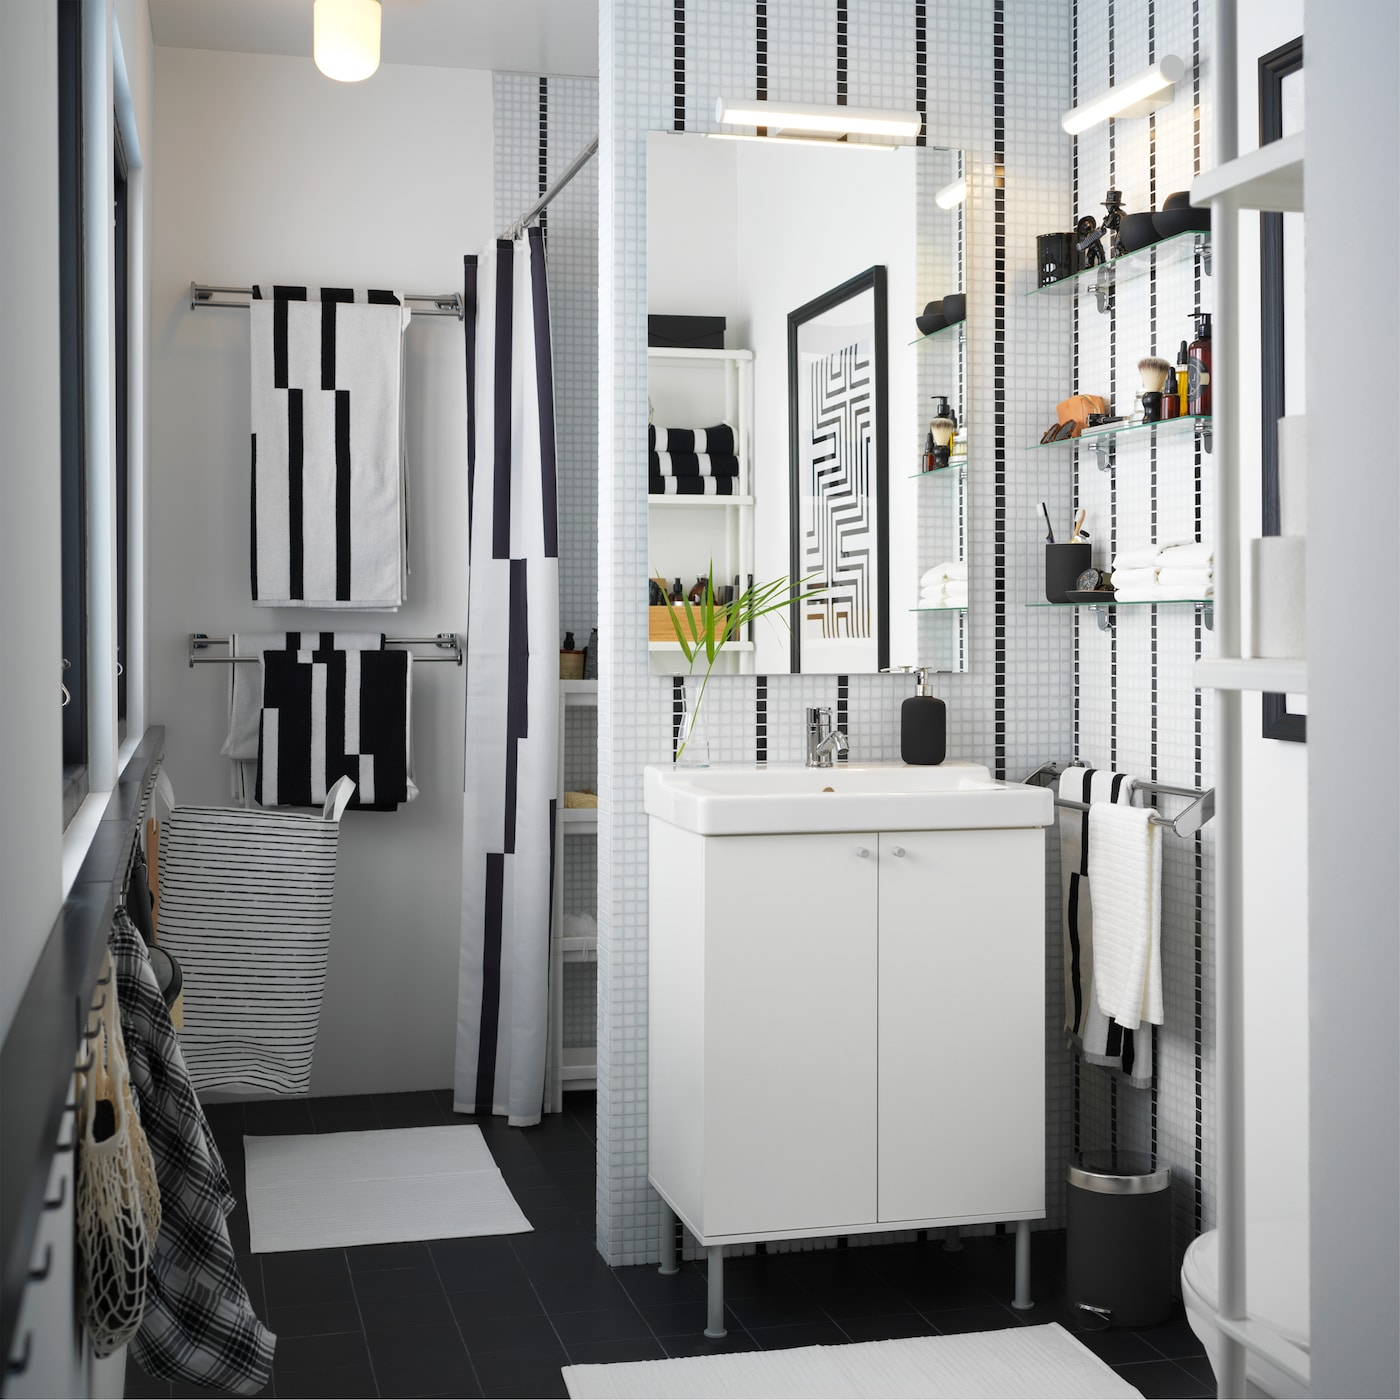 A small, beautiful bathroom with functional storage - IKEA Switzerland